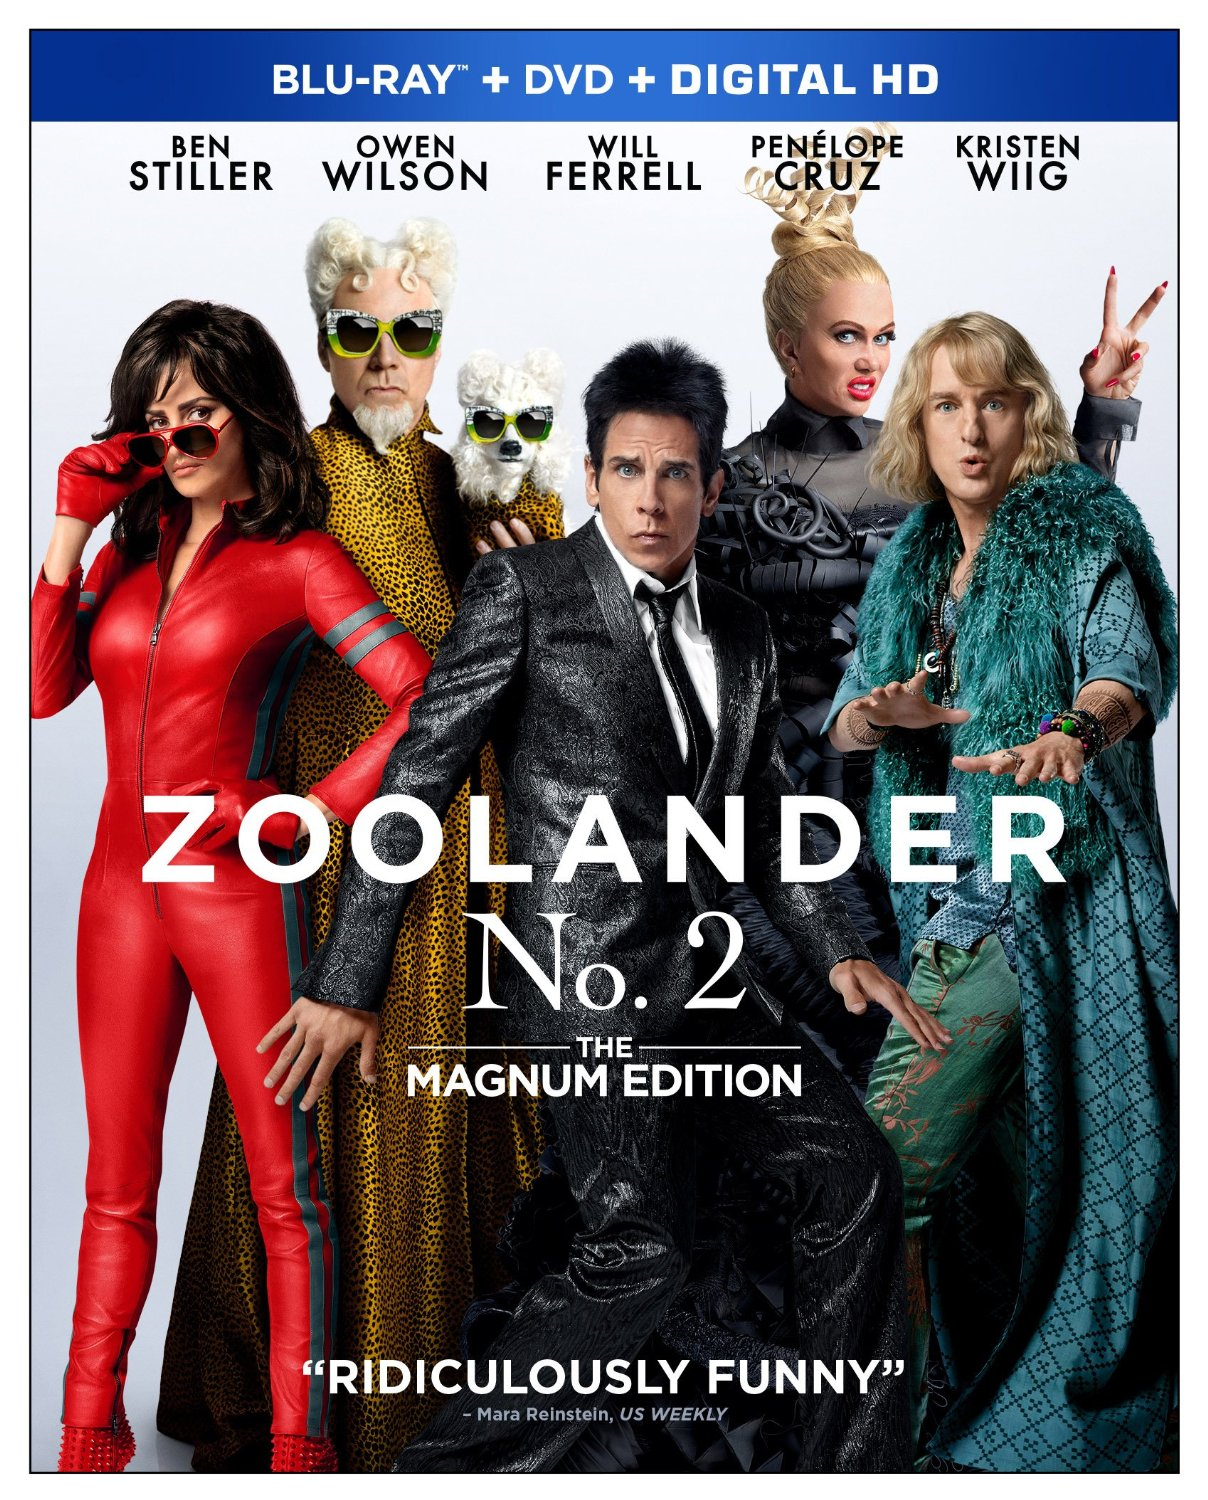 Zoolander [Movie] - Zoolander No. 2: The Magnum Edition